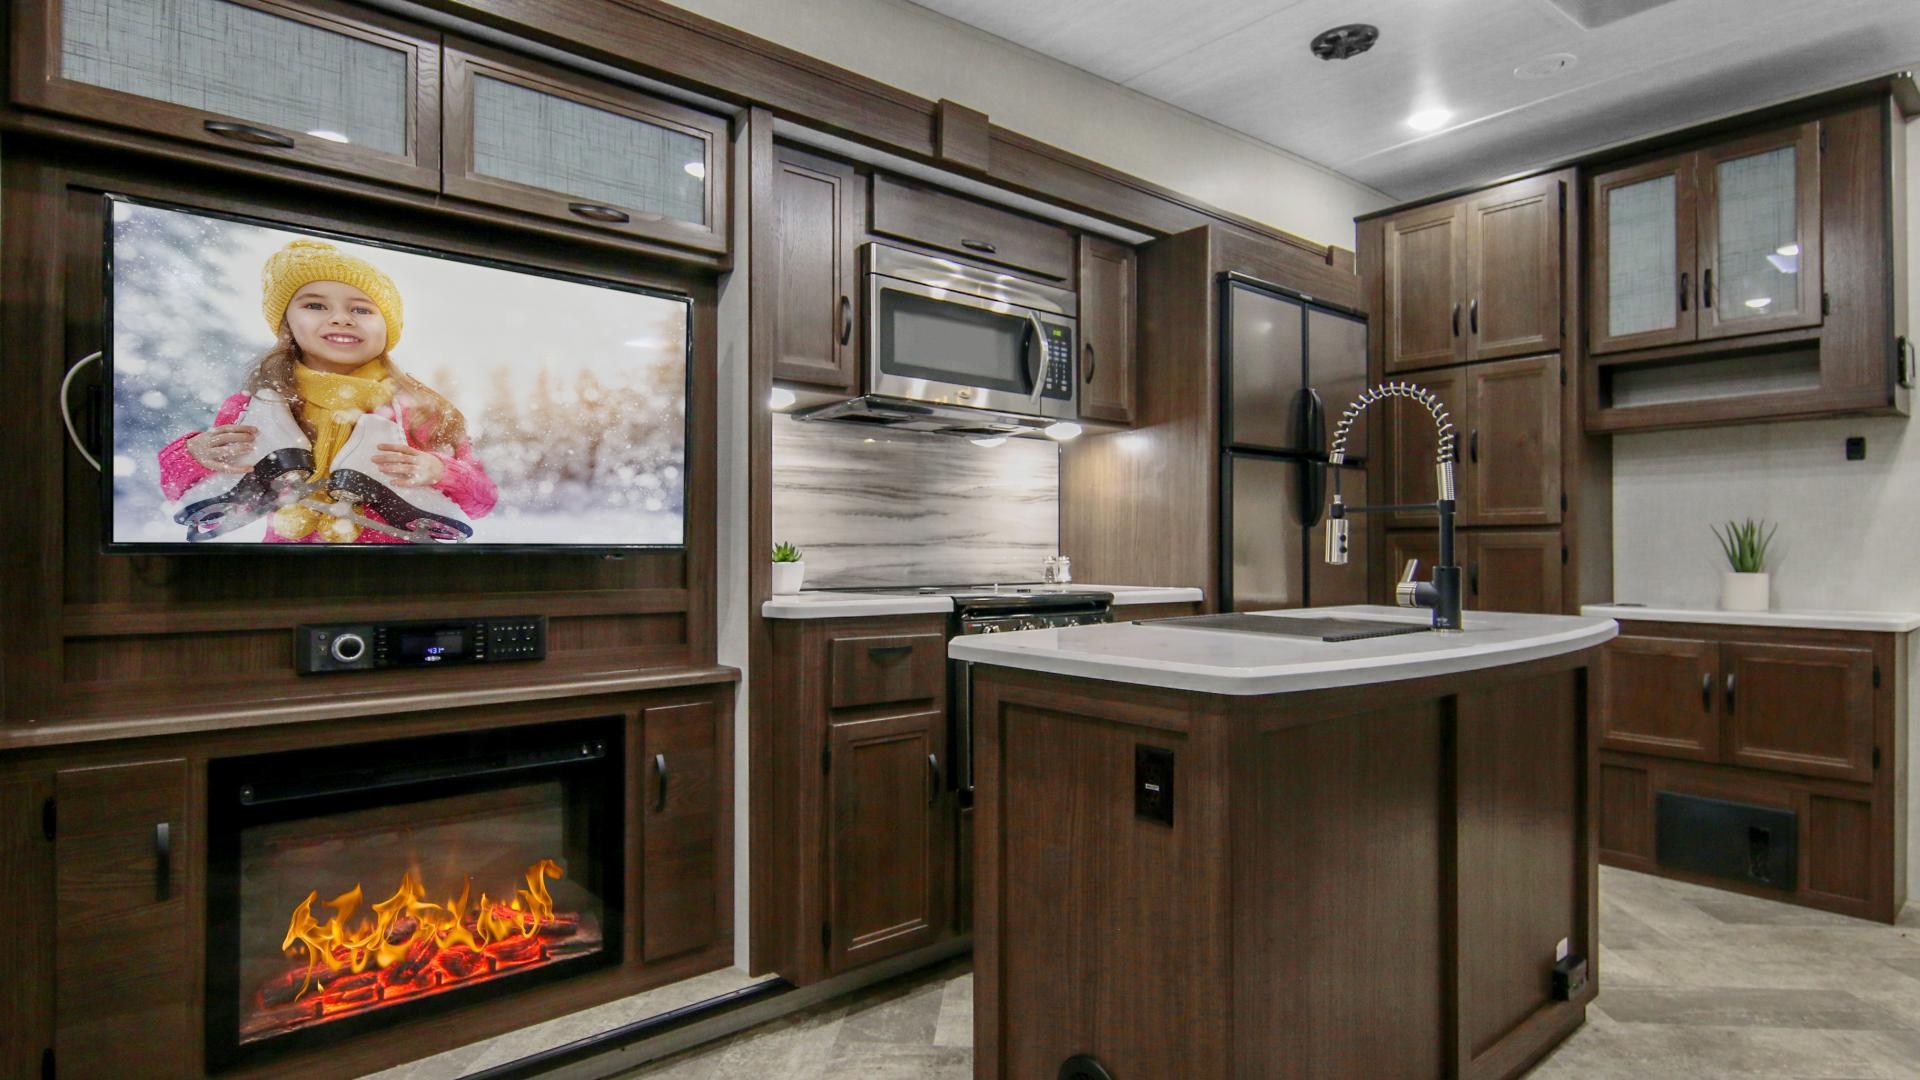 Winnebago Voyage Fifth Wheel kitchen area with island, tv enterntainment and fireplace